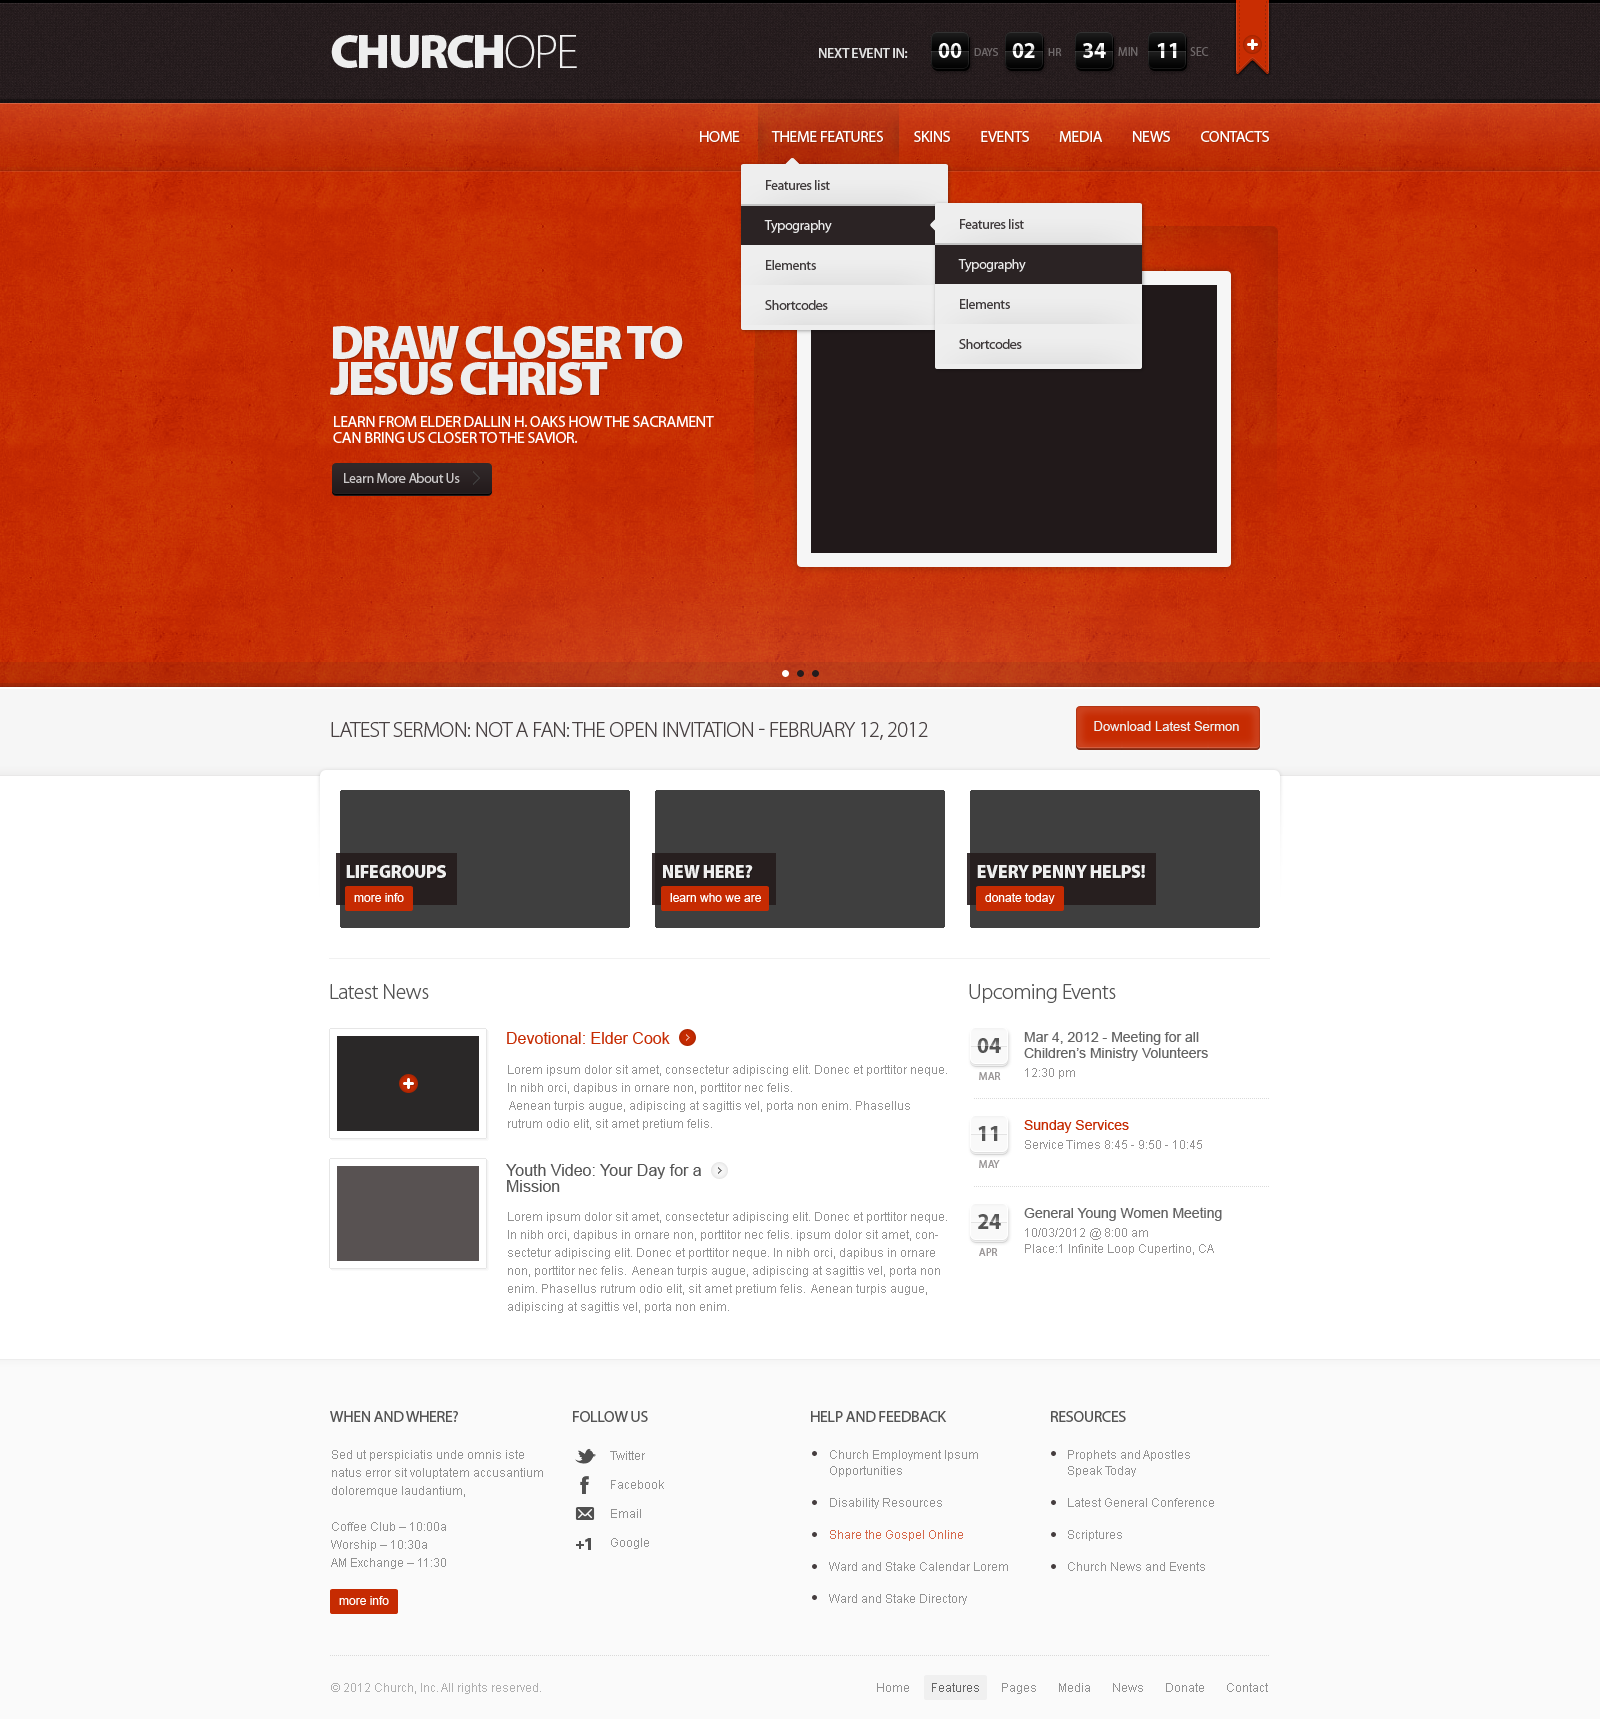 http://0.s3.envato.com/files/53545408/preview/01_main.png